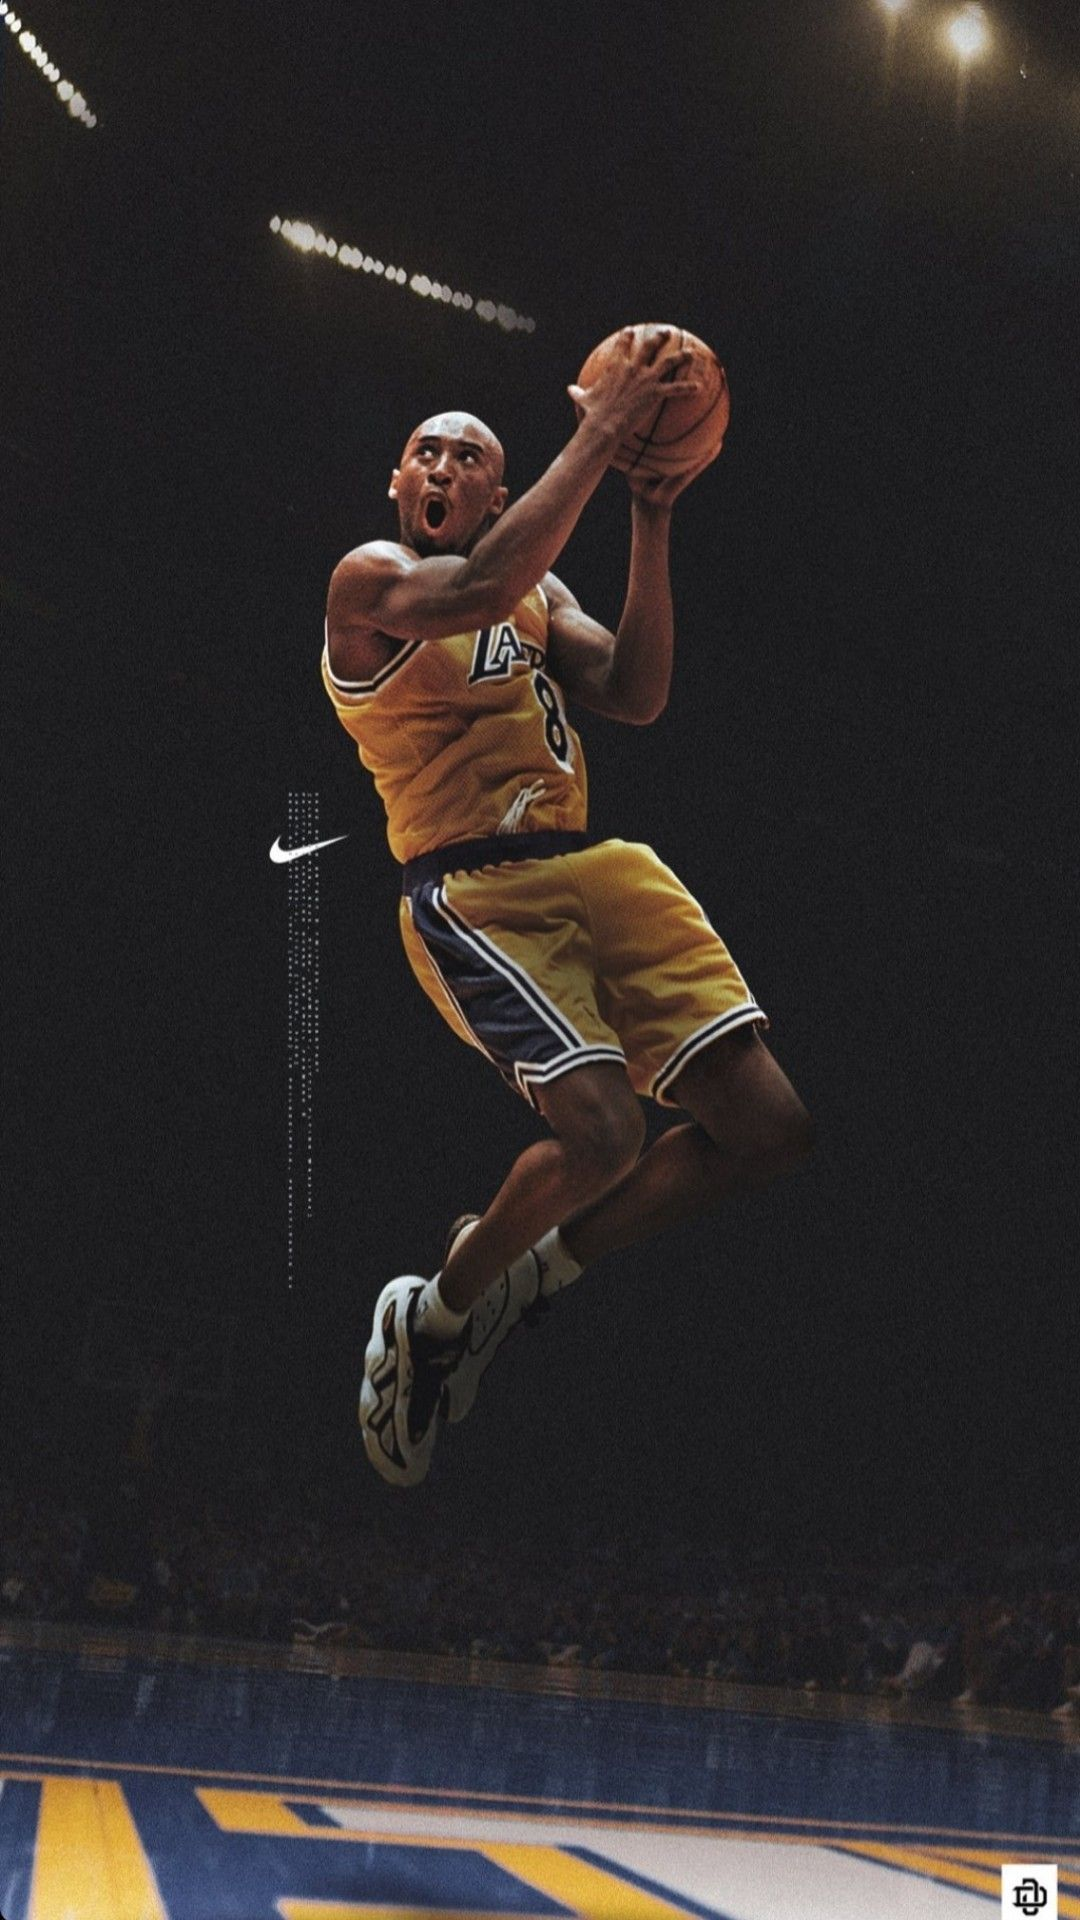 Kobe Bryant Wallpaper Iphone 1080x1920 Download Hd Wallpaper Wallpapertip